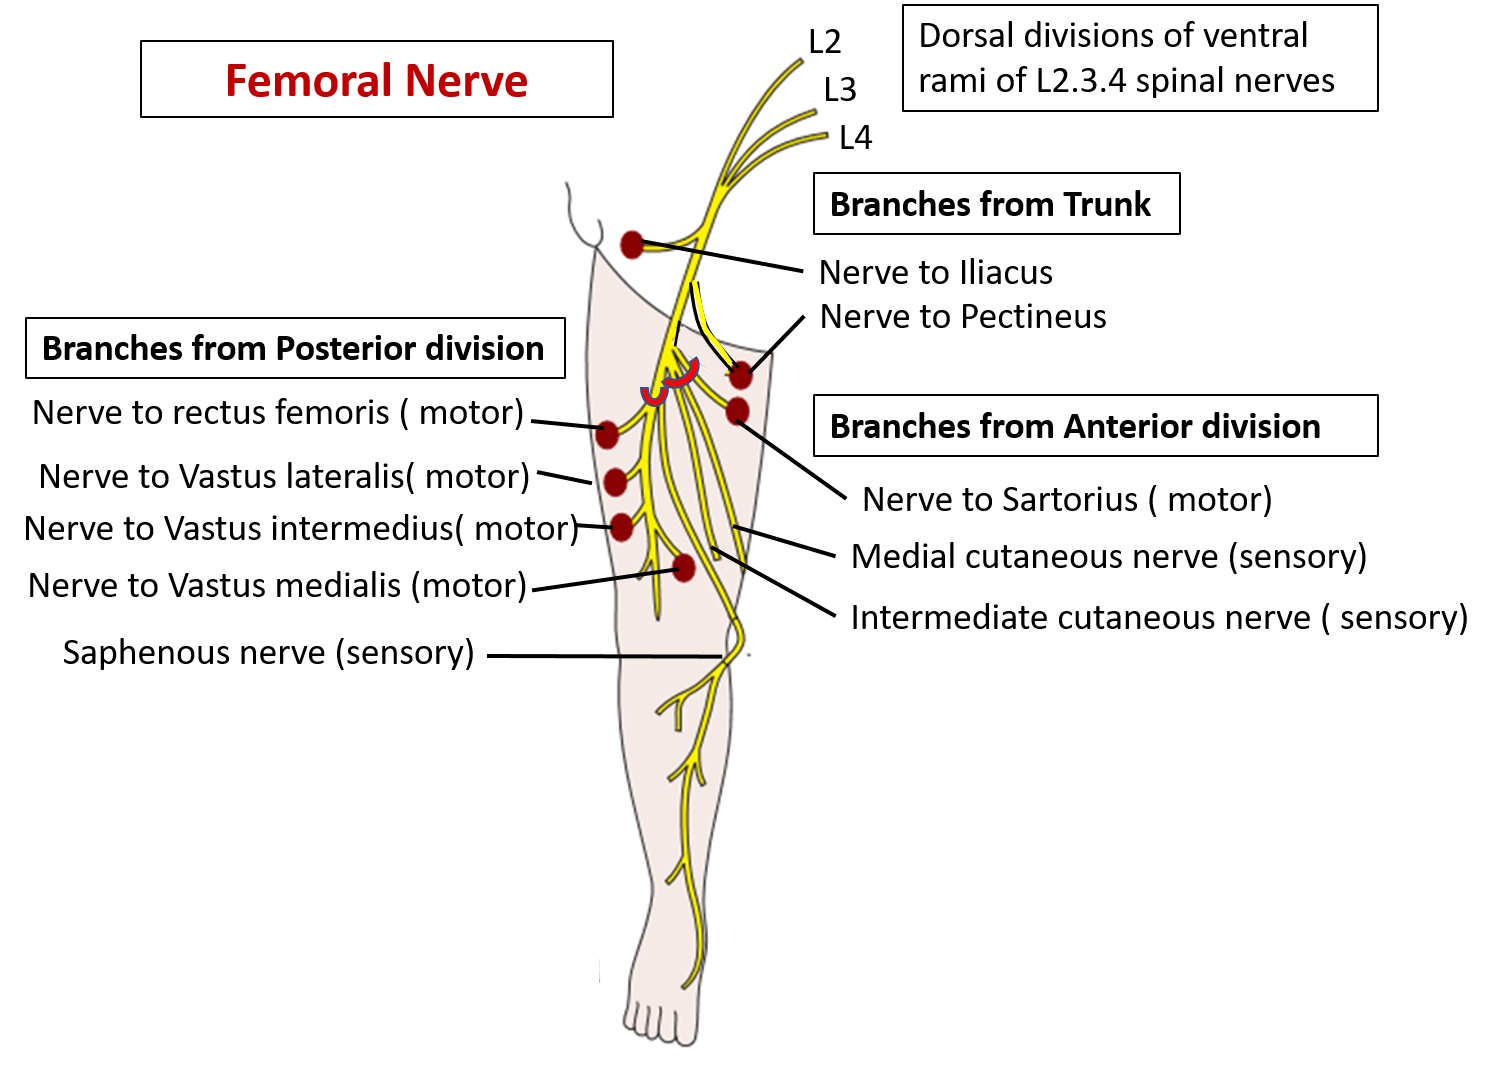 Dorable Anatomy Femoral Nerve Ornament Human Anatomy Images